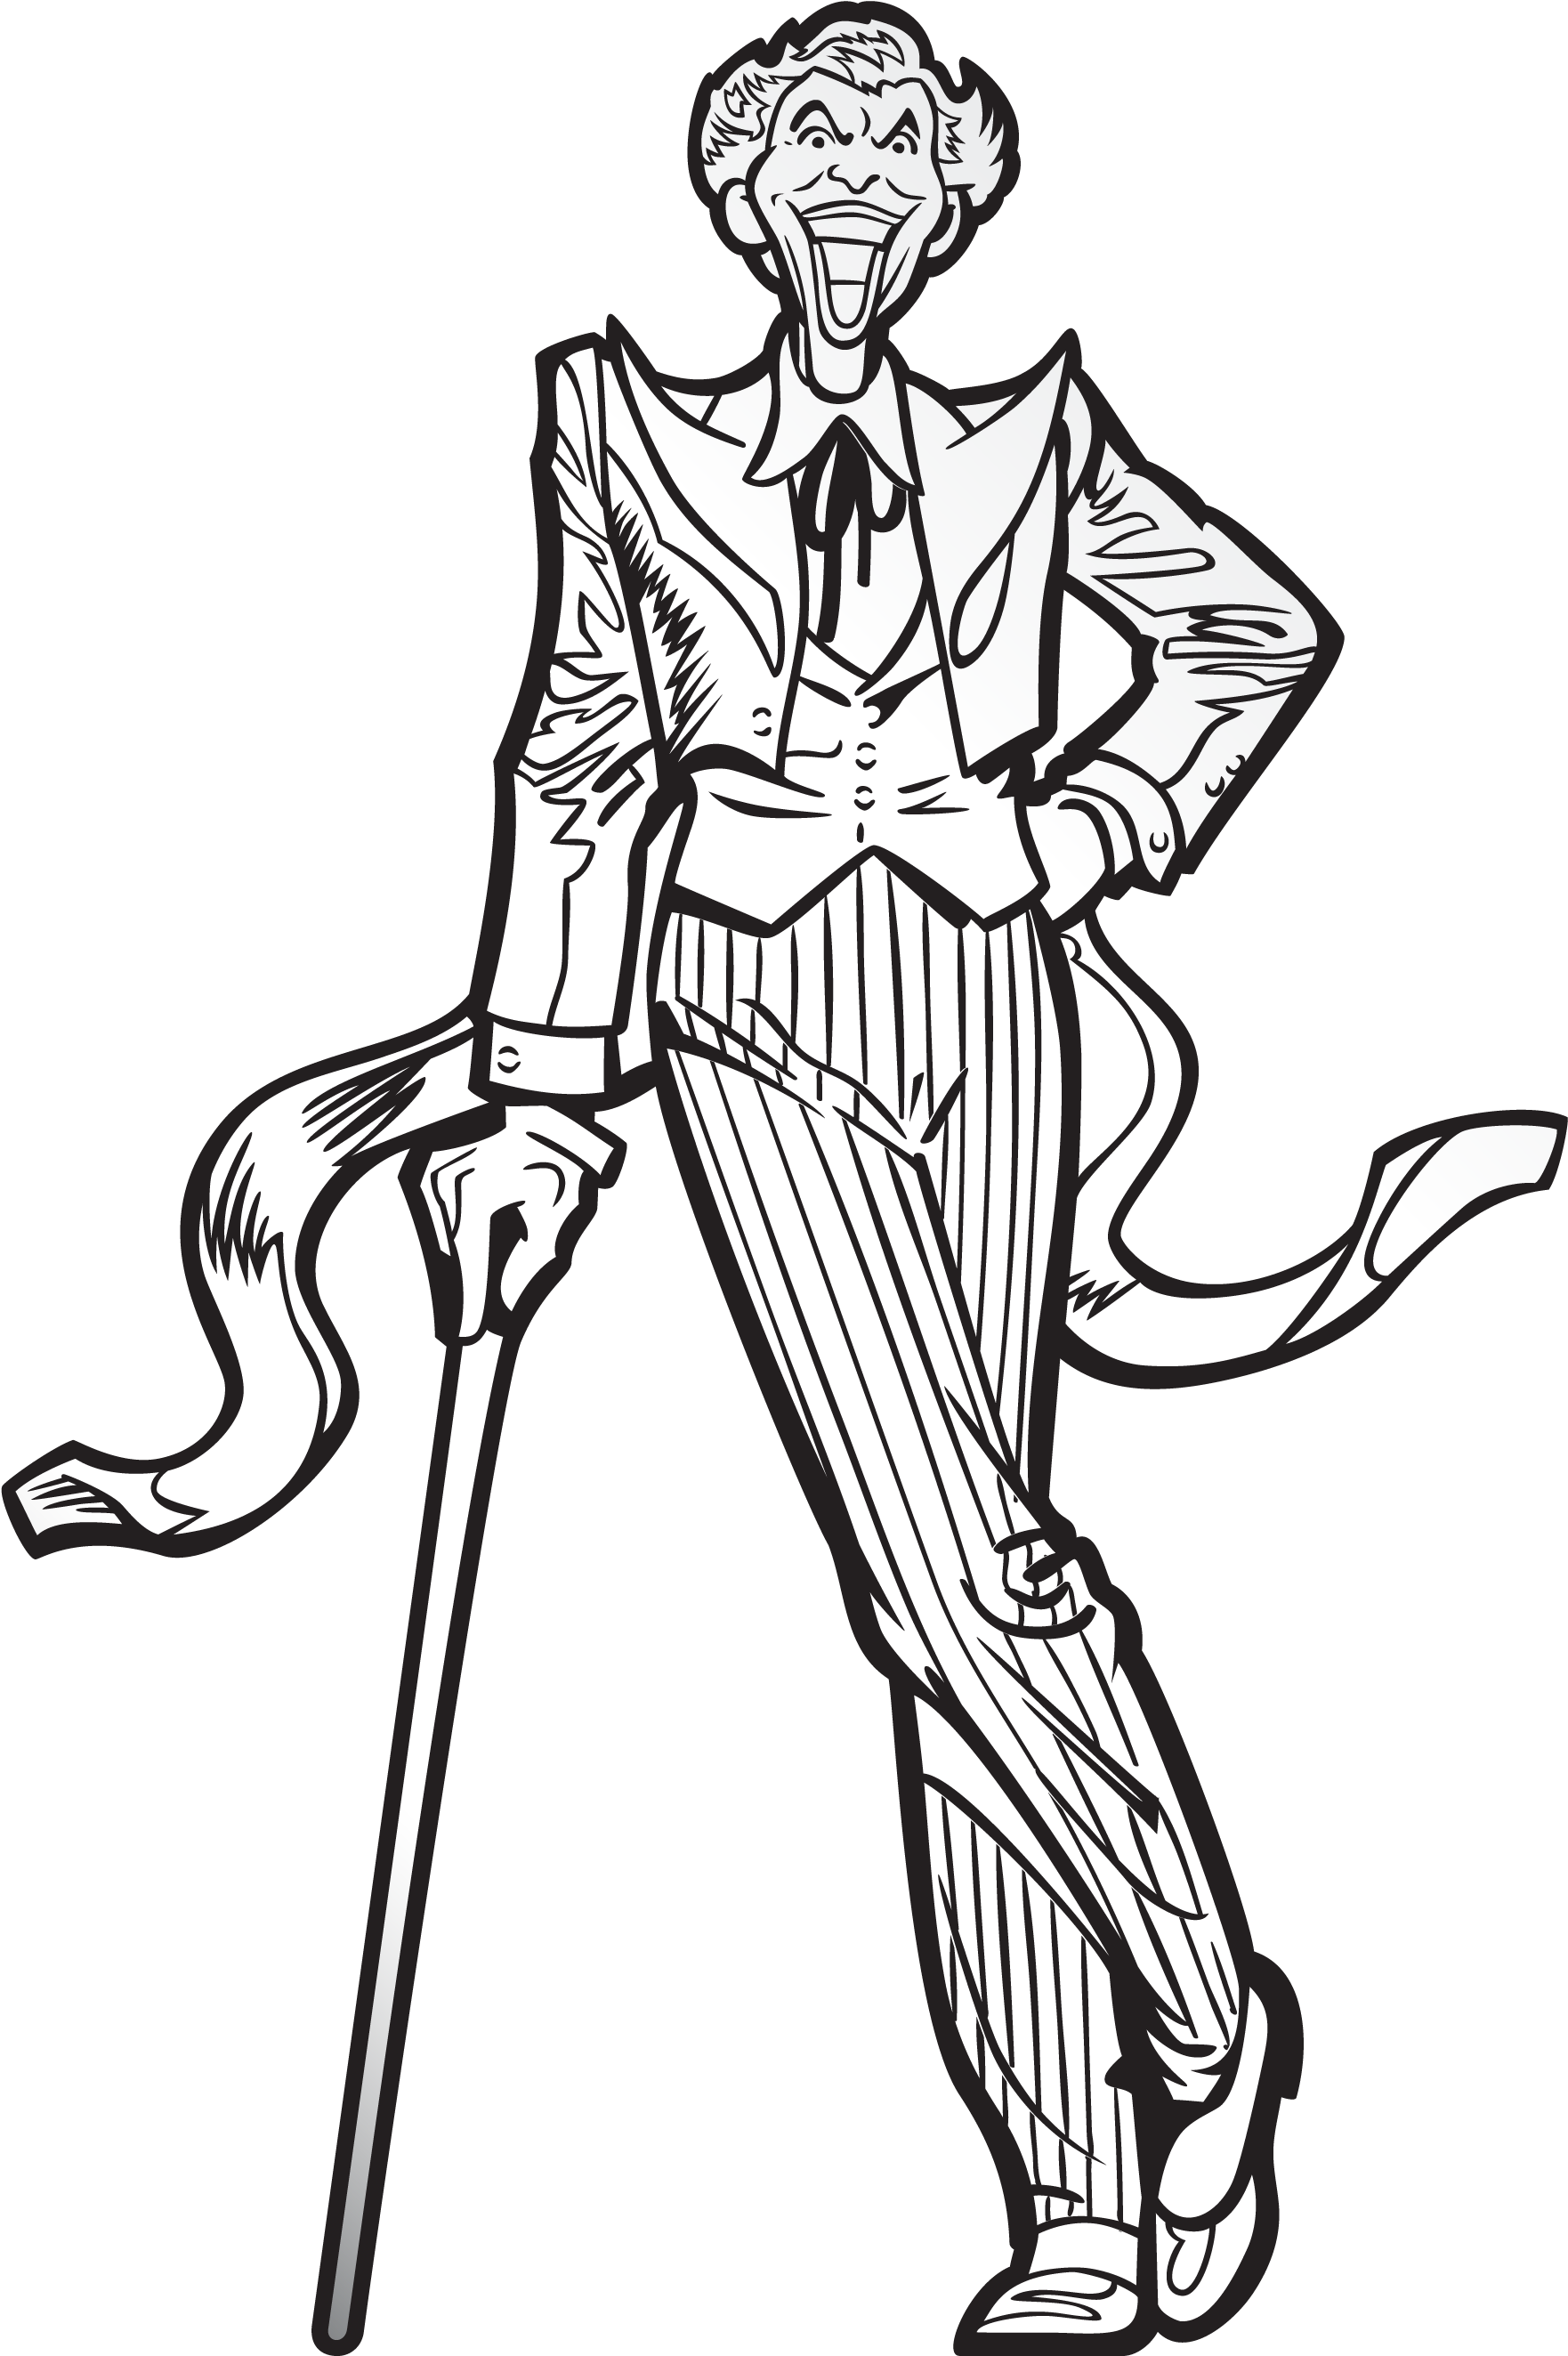 Download Graphic Library Stock Action Drawing Figure Figpin Joker Full Size Png Image Pngkit